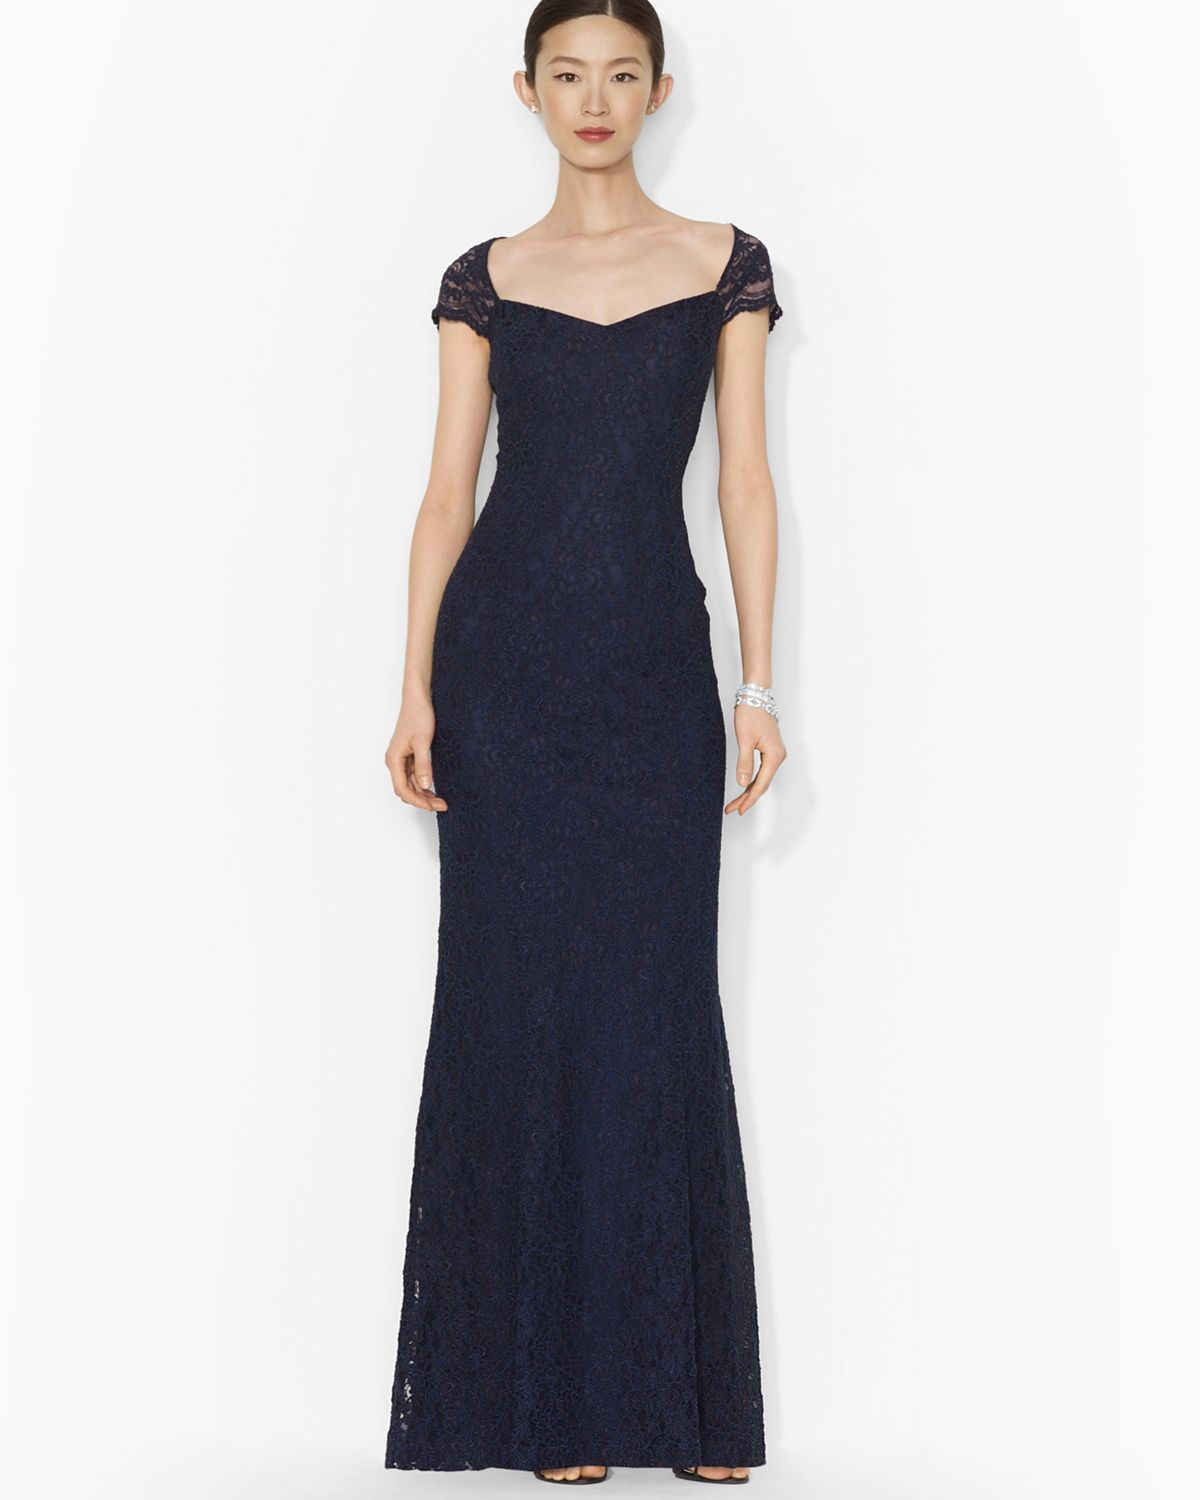 Lyst - Ralph Lauren Lauren Gown Cap Sleeve Lace in Blue